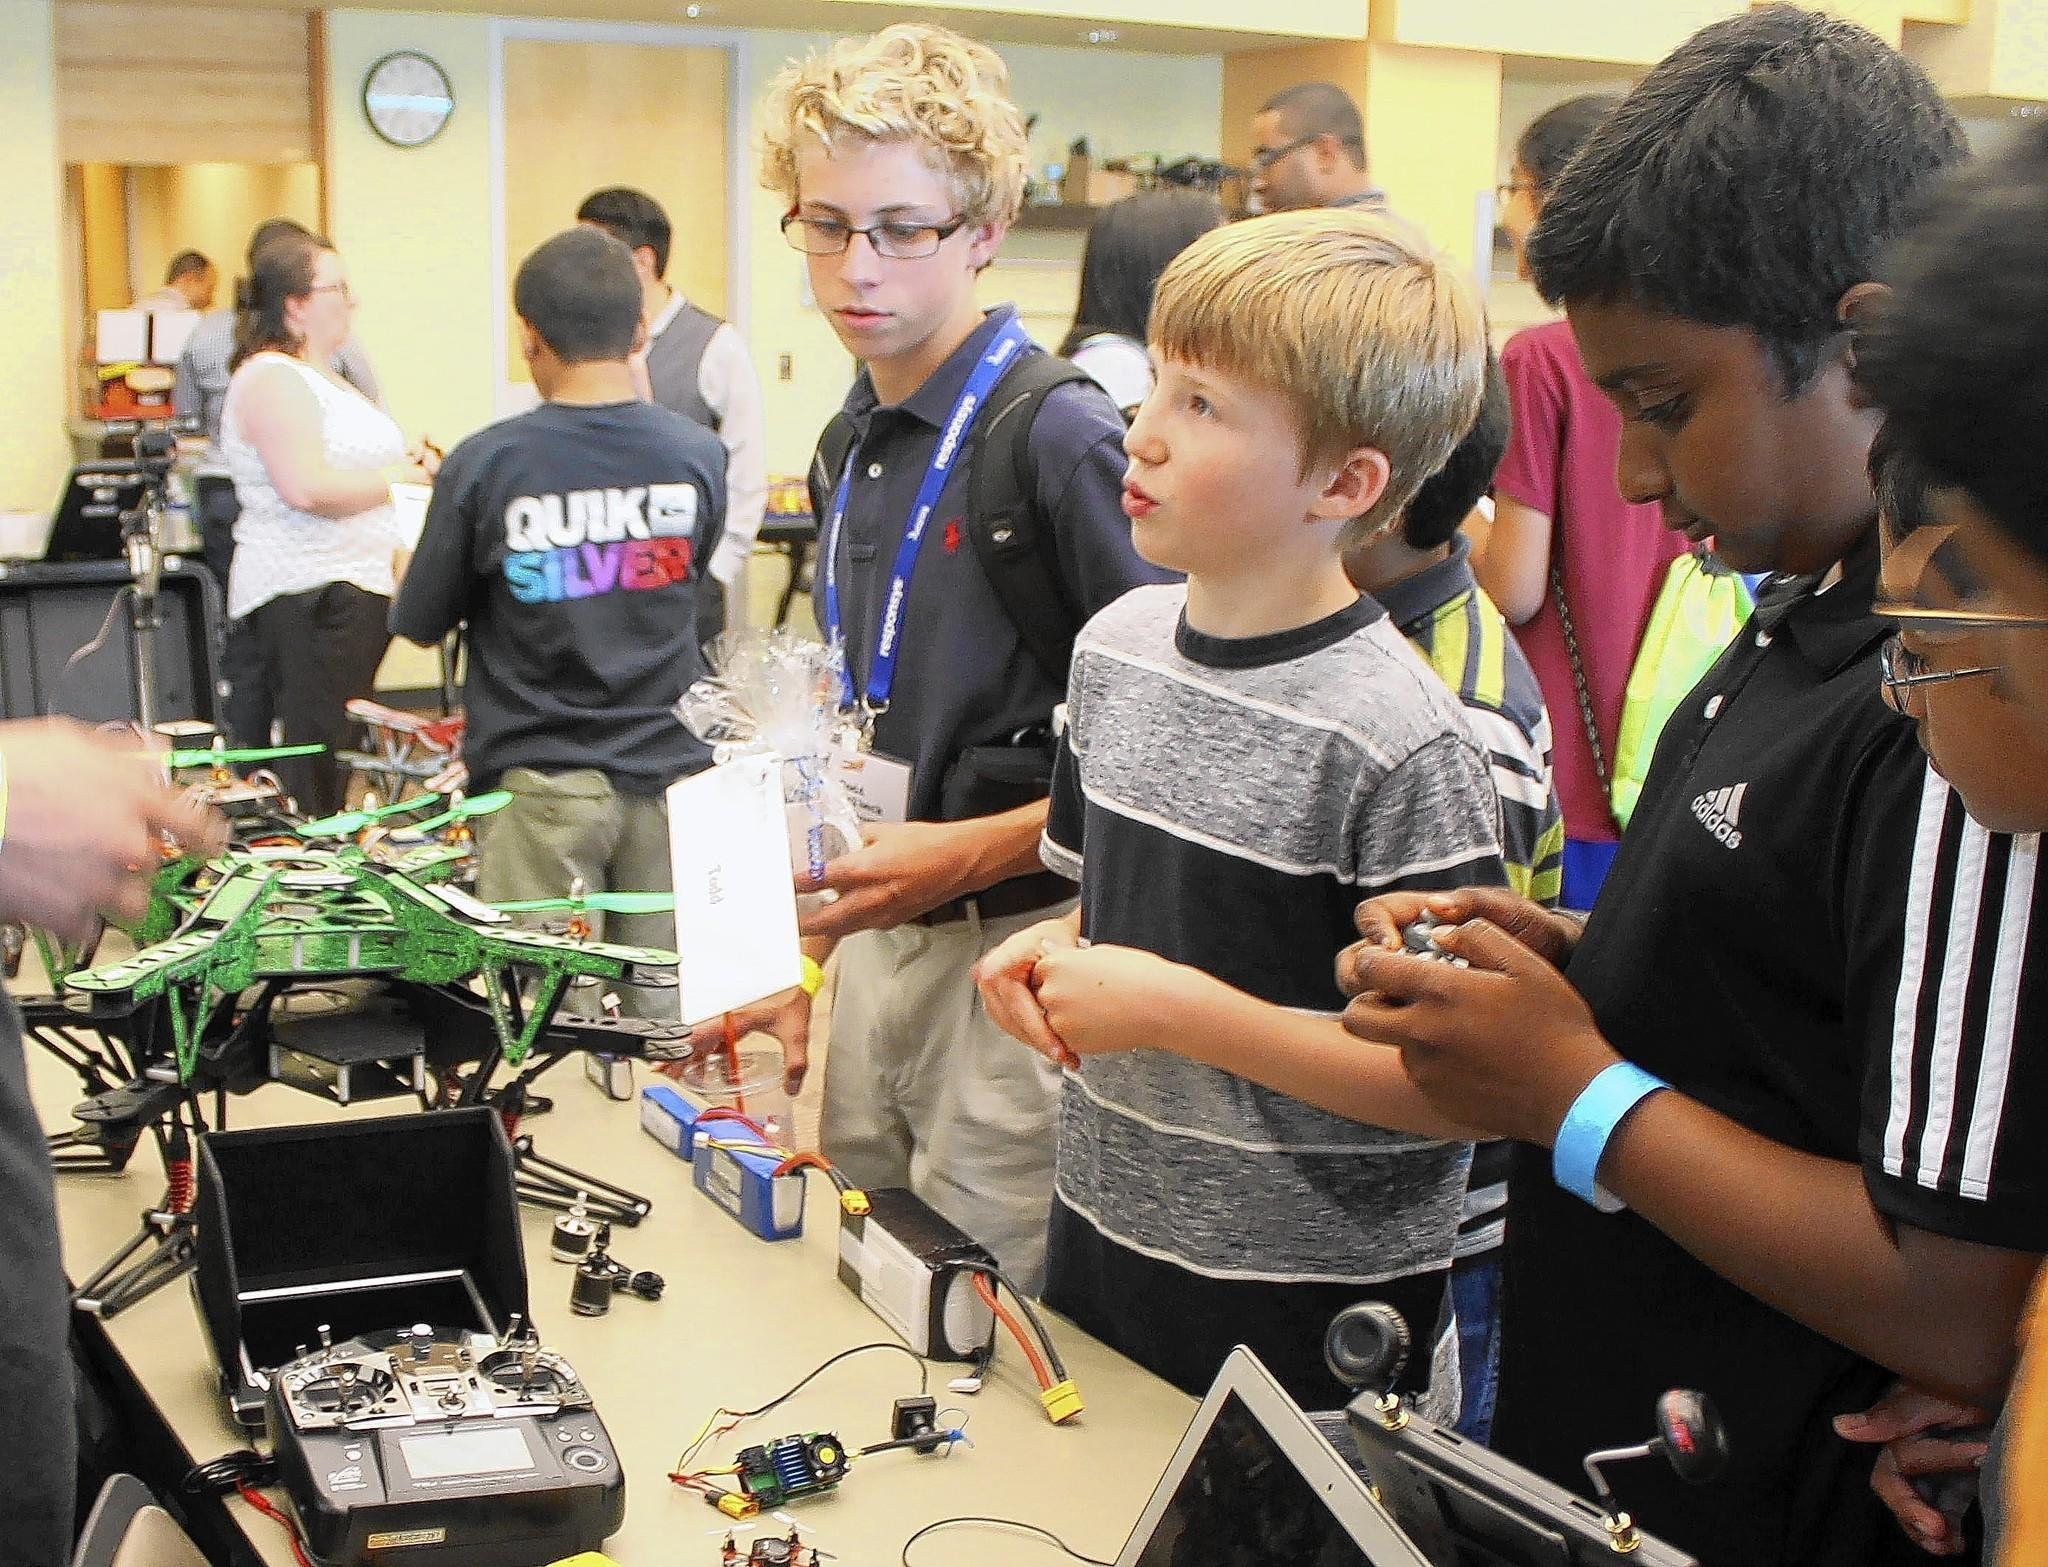 Teens from around the Naperville area ask questions about drone technology at Teen Ignite.